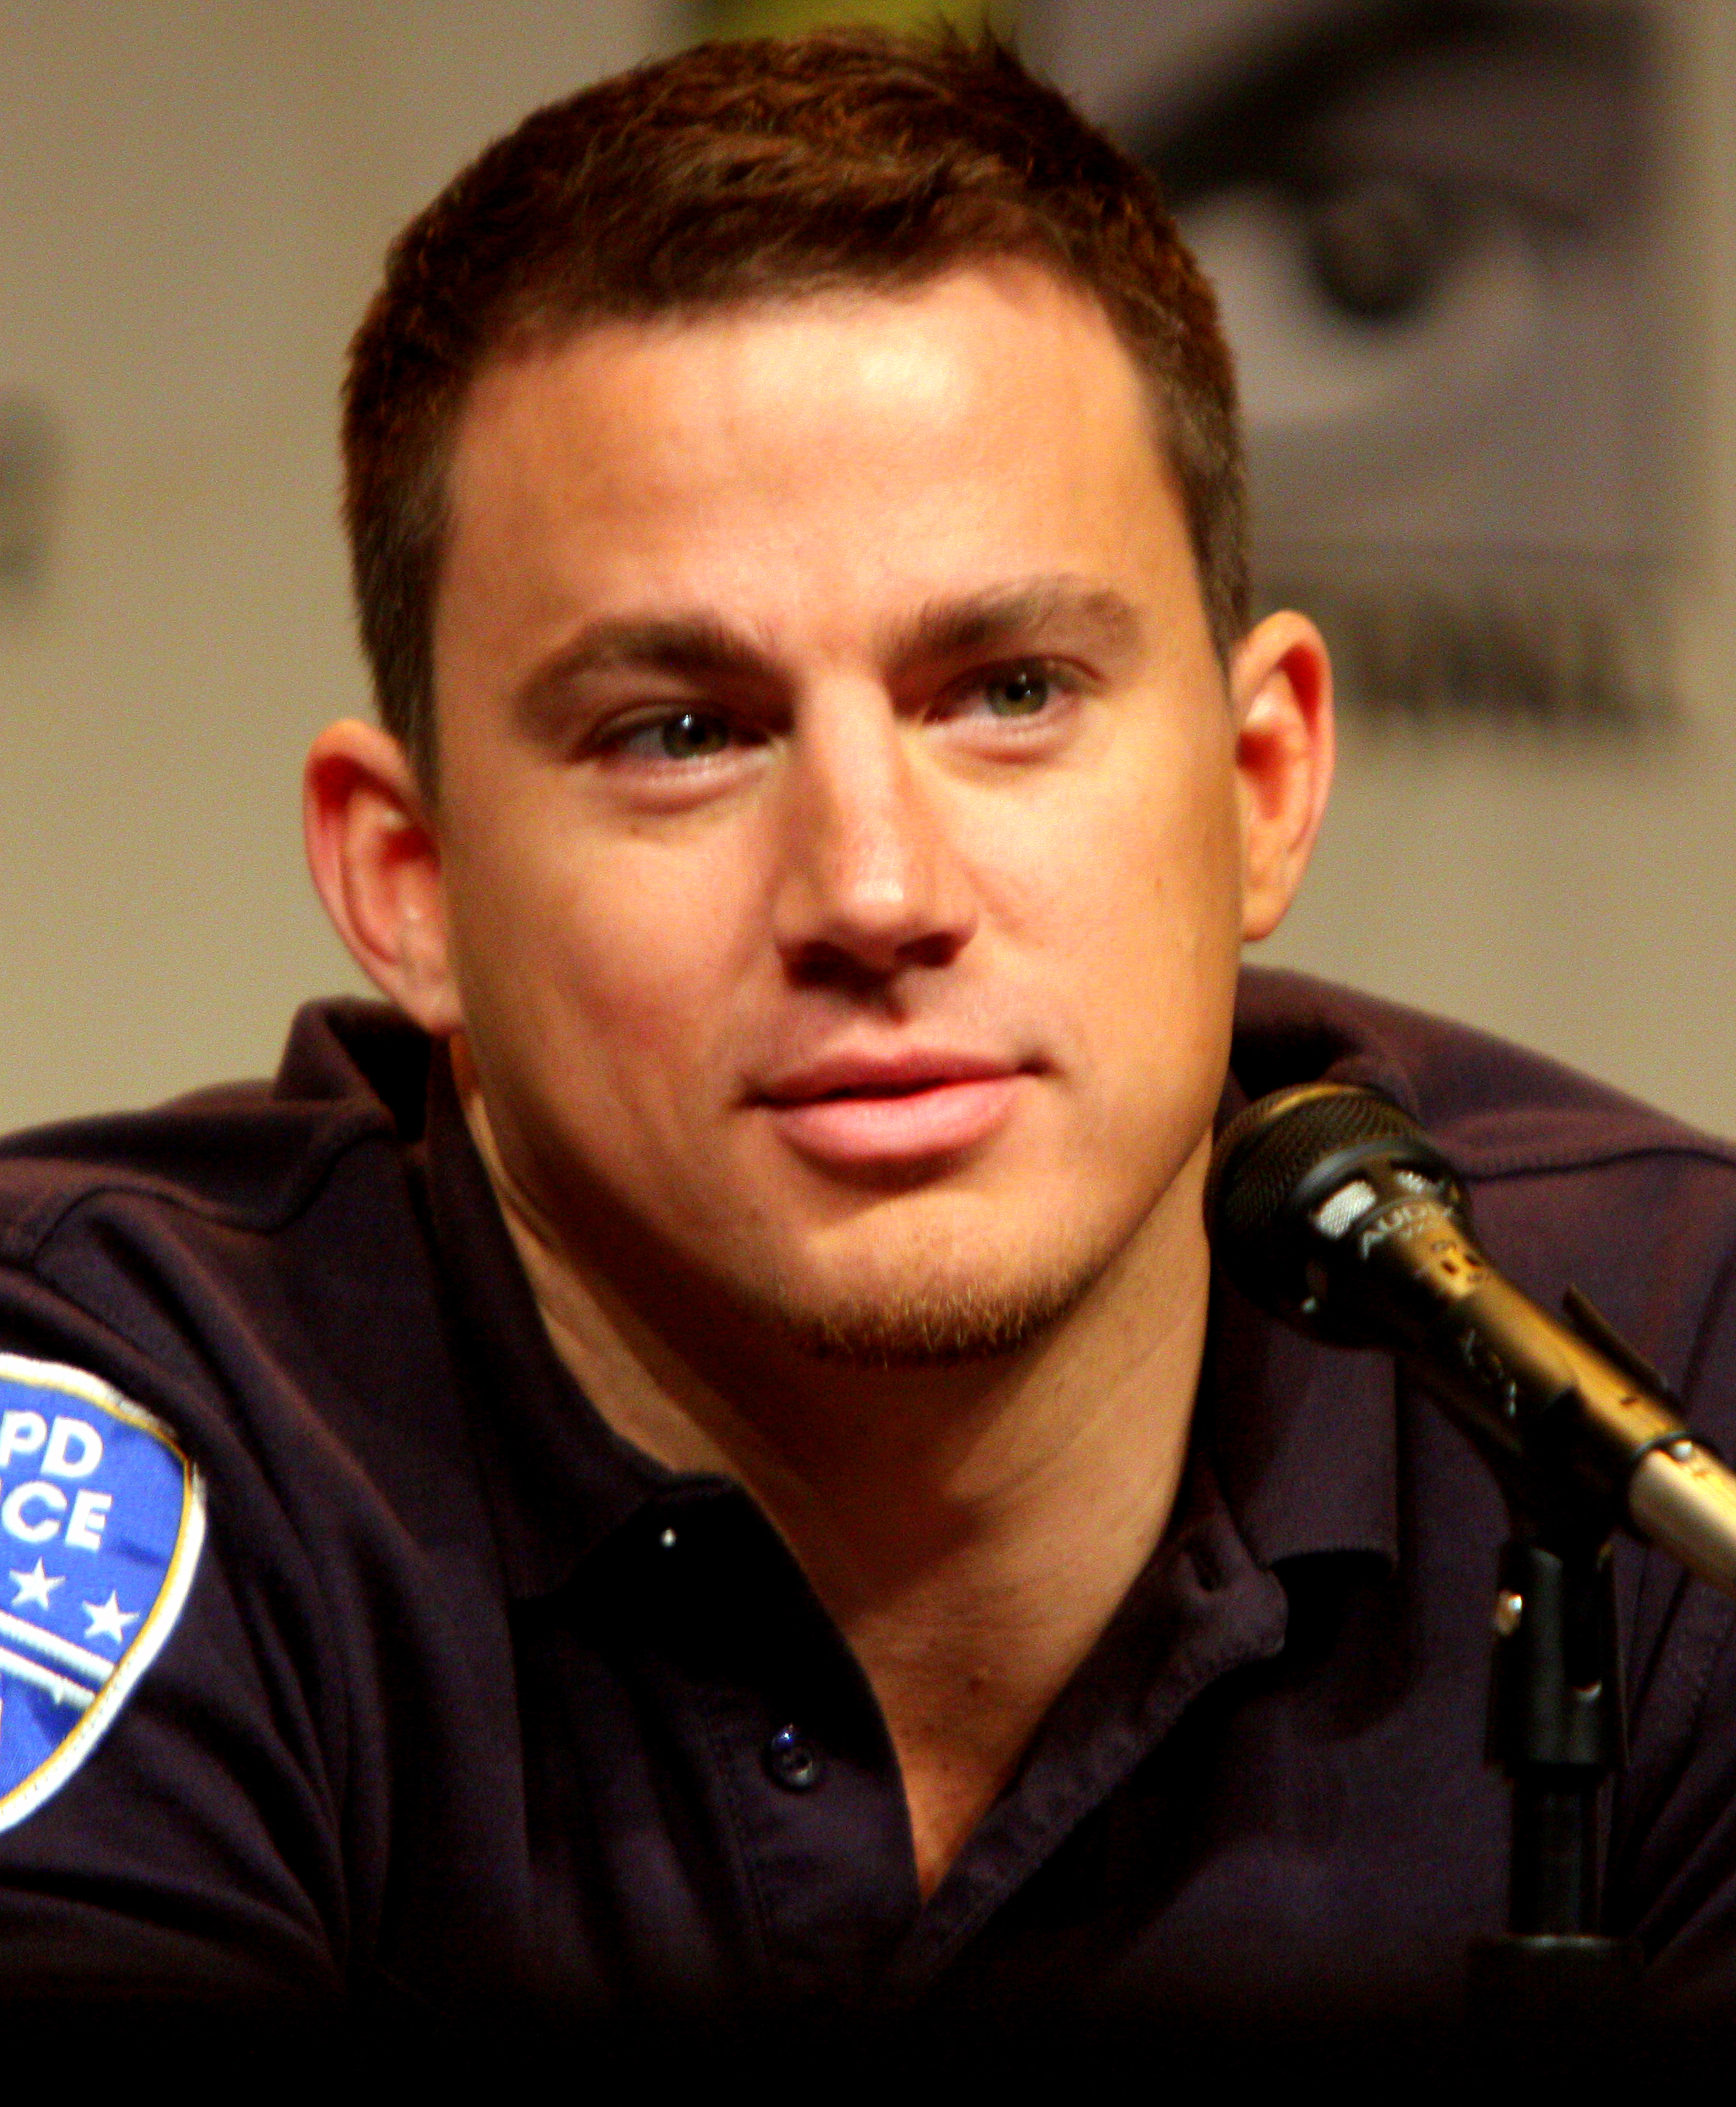 Channing Tatum WonderCon 2012  Channing Tatum